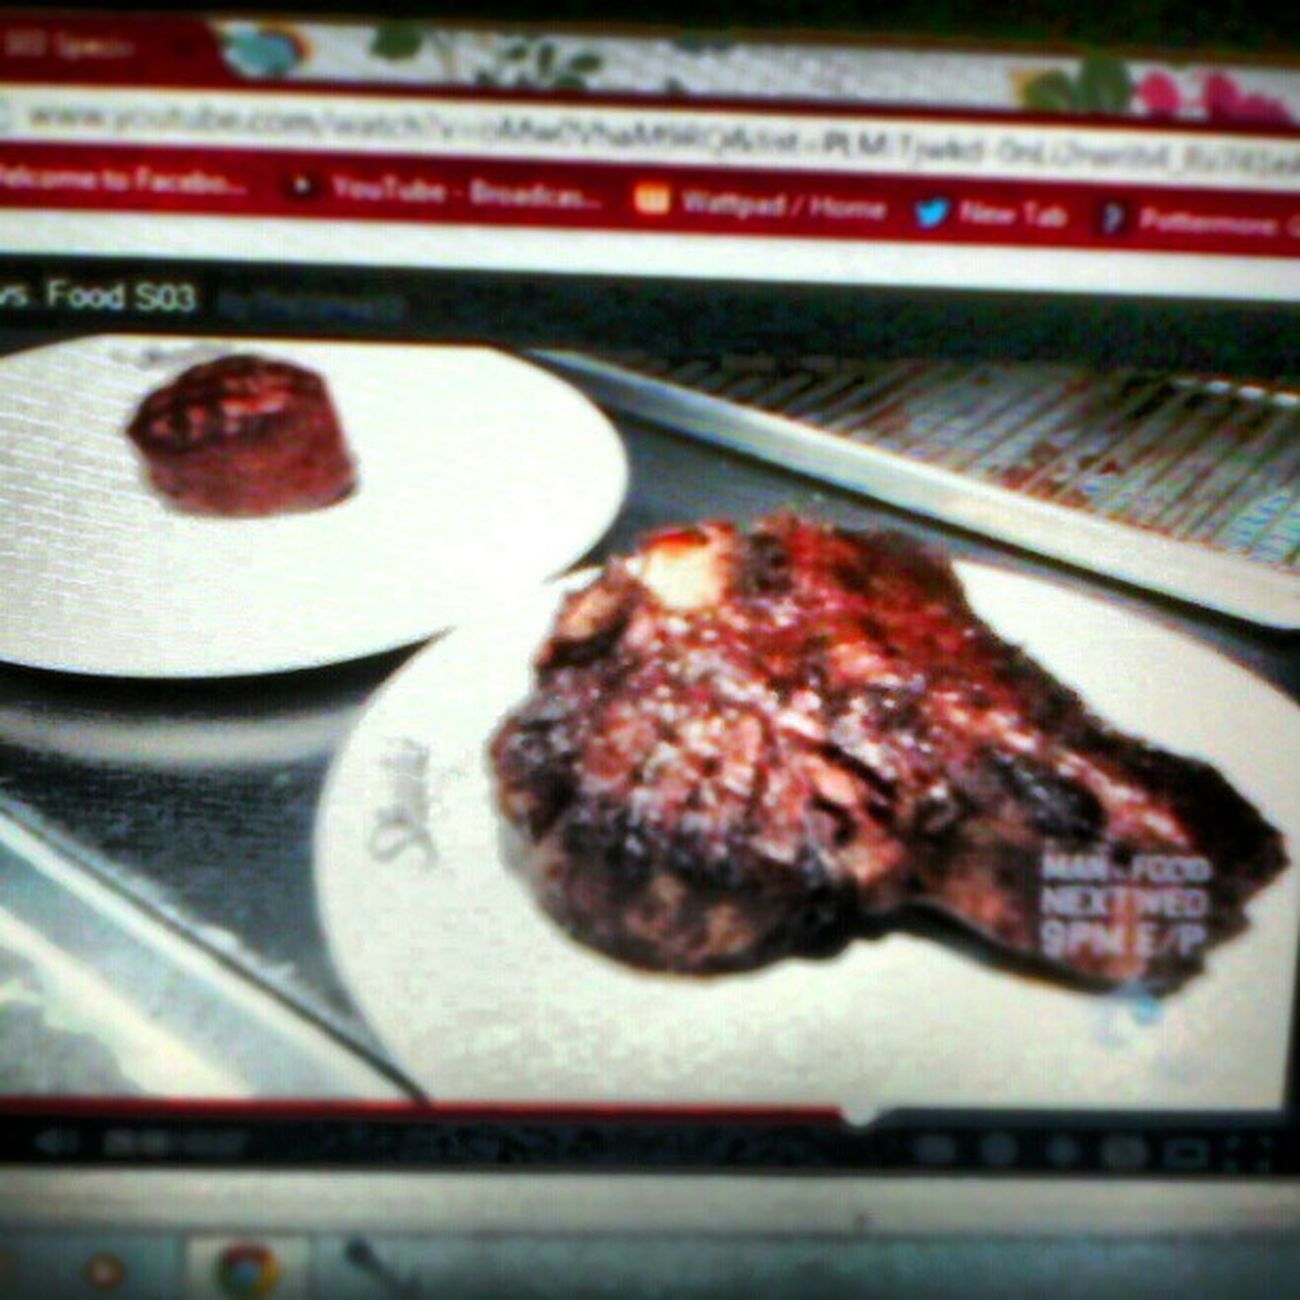 48 oz. Porterhouse Steak ShulasSteak ManVFood Miami S03